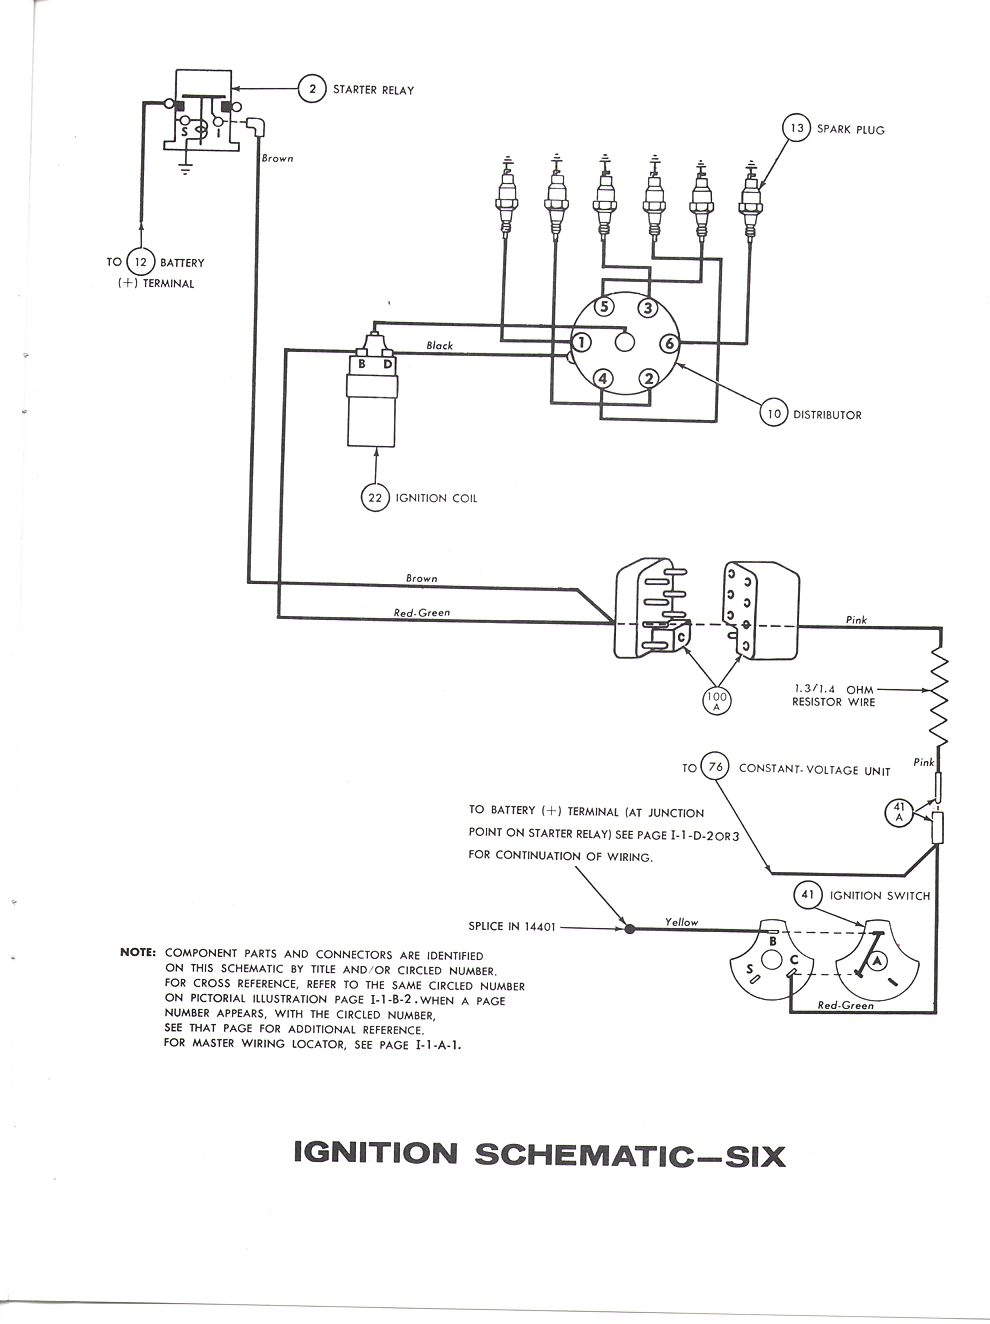 Falcon Diagrams 1960 Ford Ranchero Wiring Harness Here You Will Find Related To The